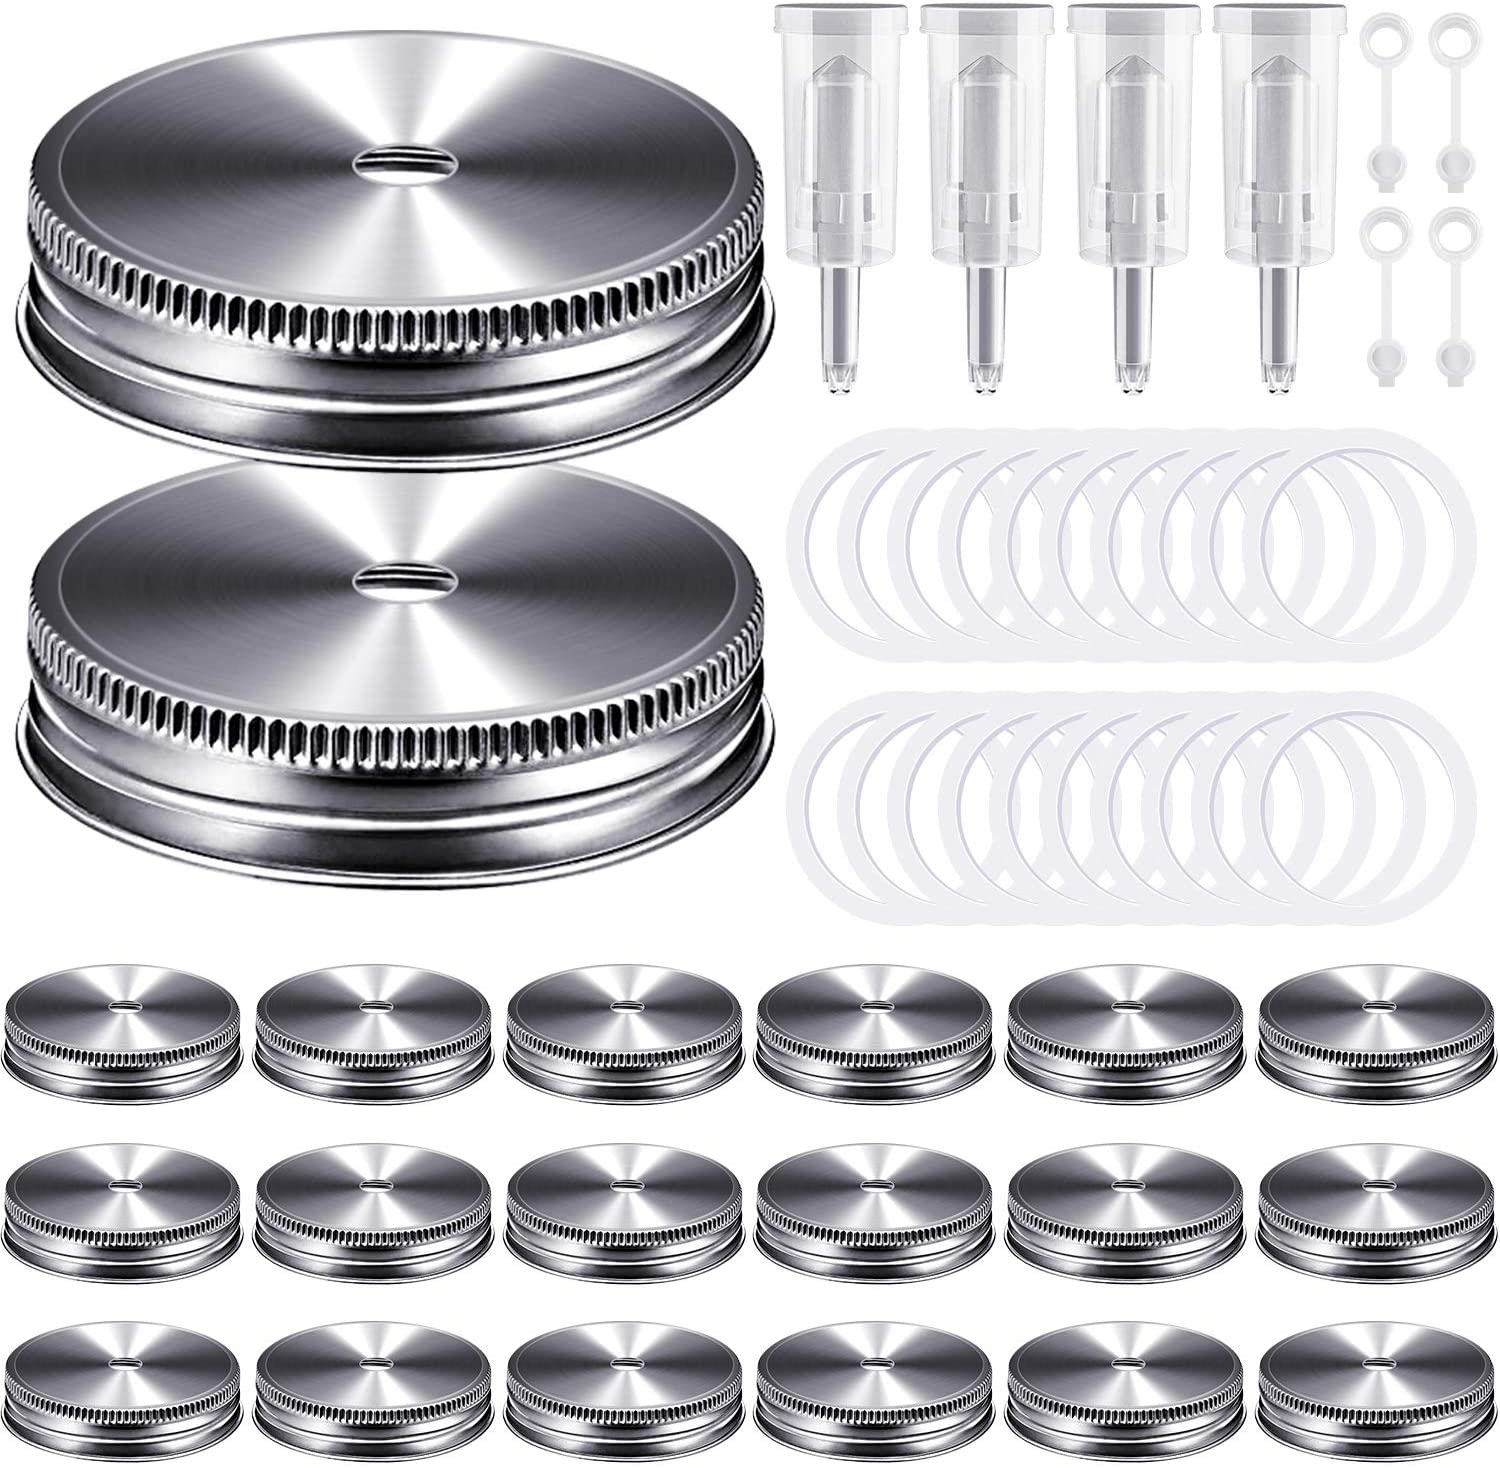 Fermentation Lids, Fermentation Kit for Wide Mouth Jars, 4 Airlocks, 20 Silicone Canning Rings, 20 Stainless Steel Mason Jar Lids for Making Sauerkraut Pickle Hot Sauce